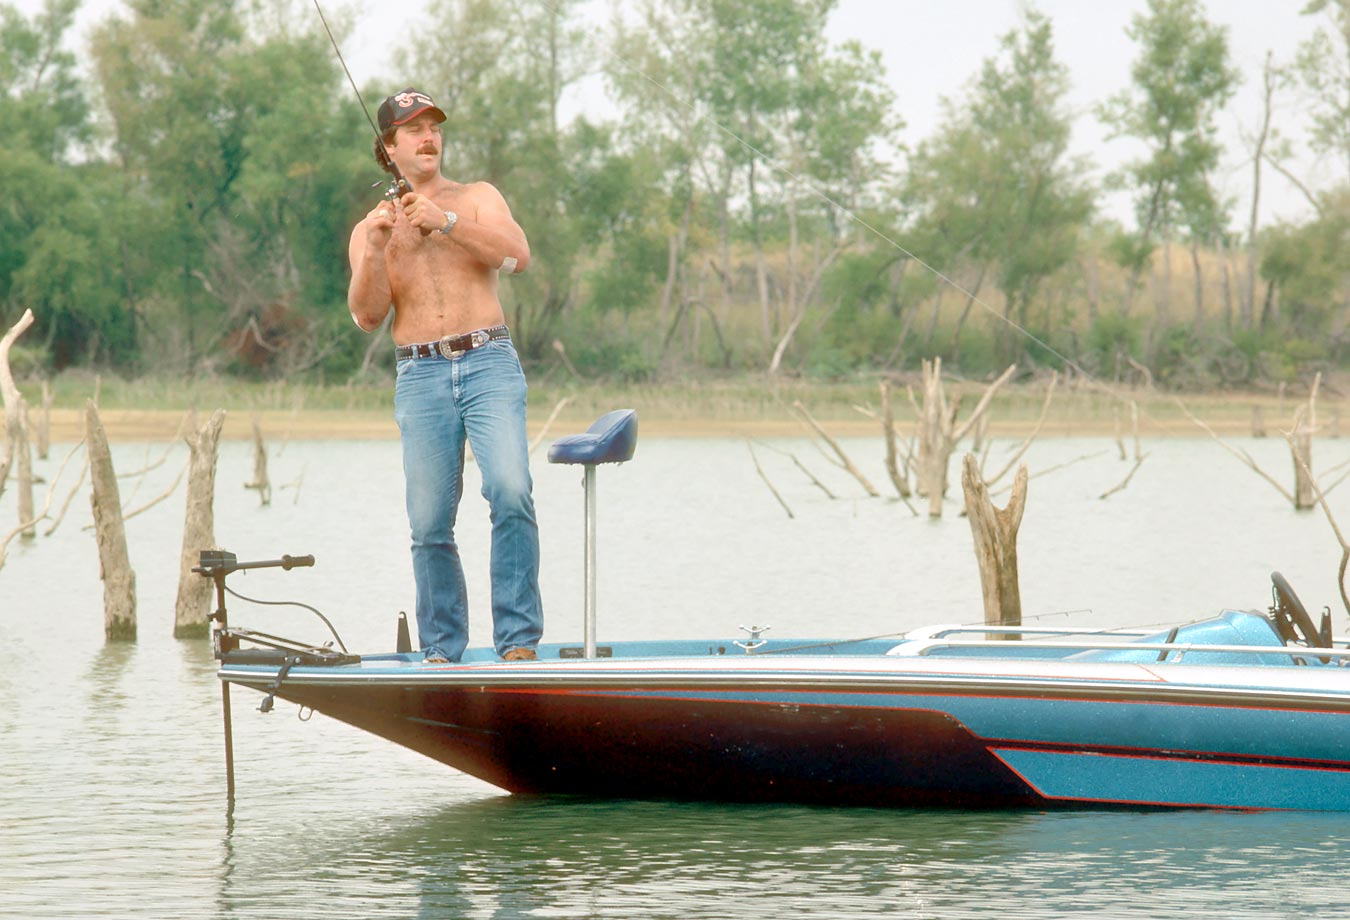 Randy White of Dallas Cowboys fishing for bass in Landenberg, Penn., in 1984.